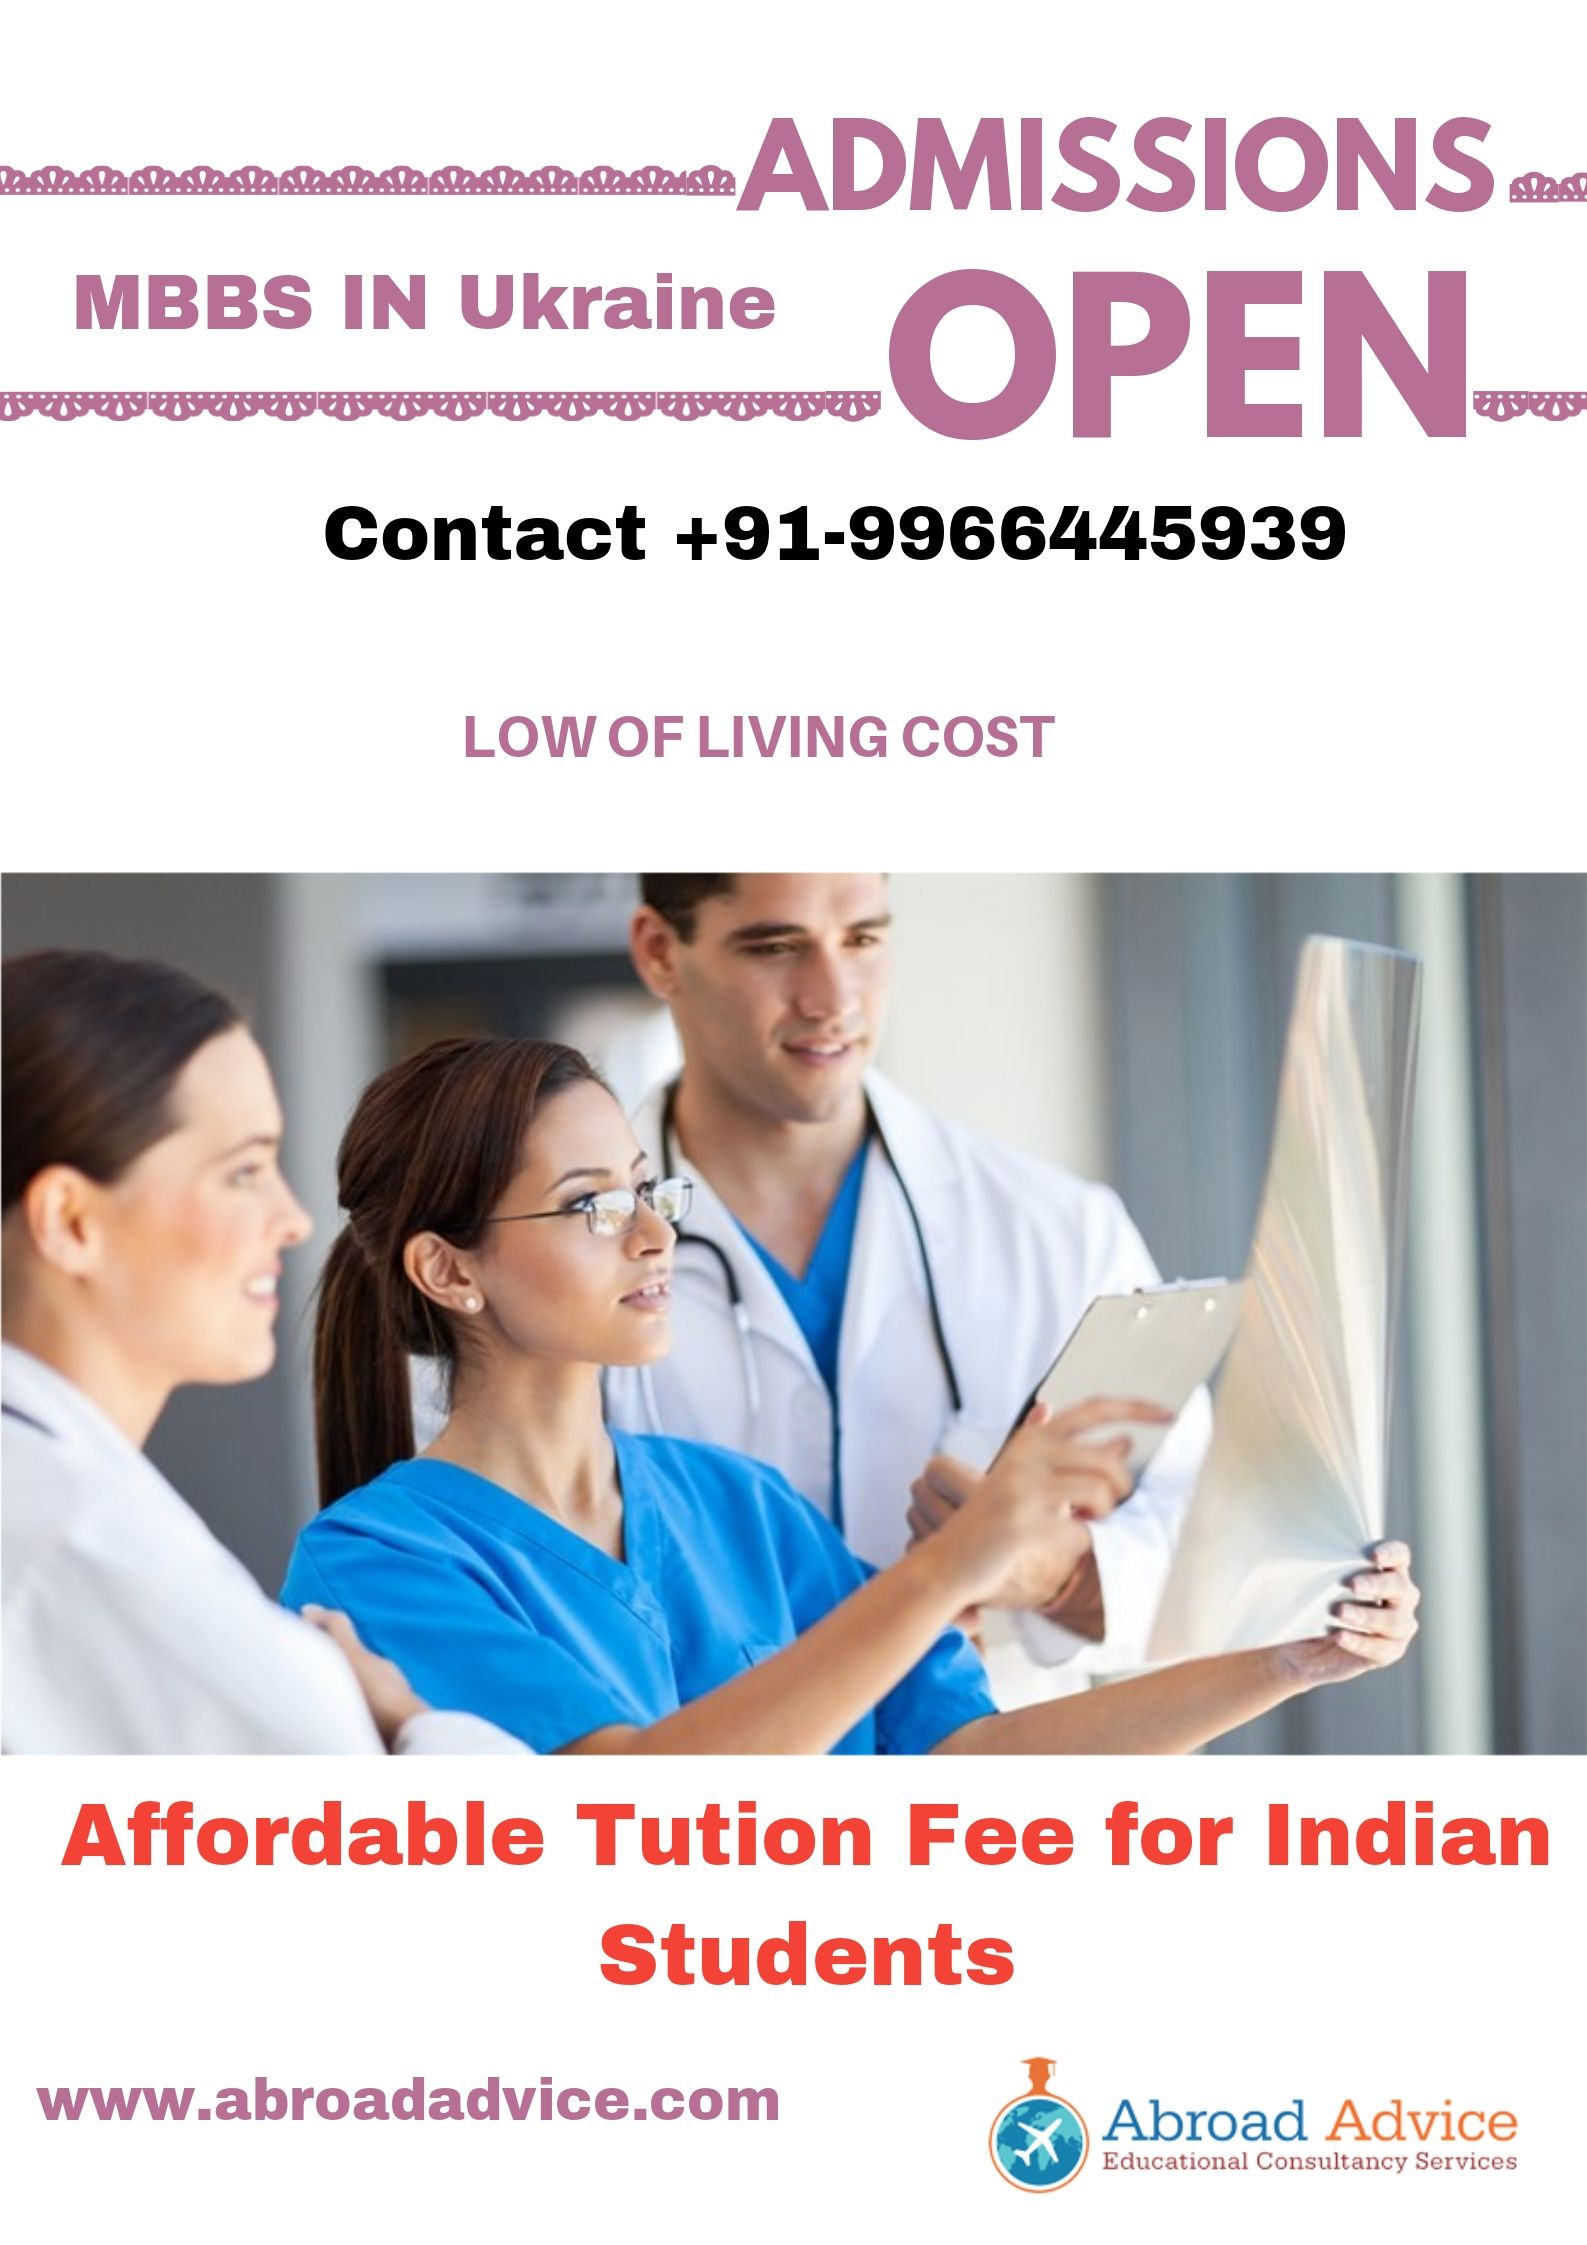 Low of living cost, affordable tuition fee for Indian